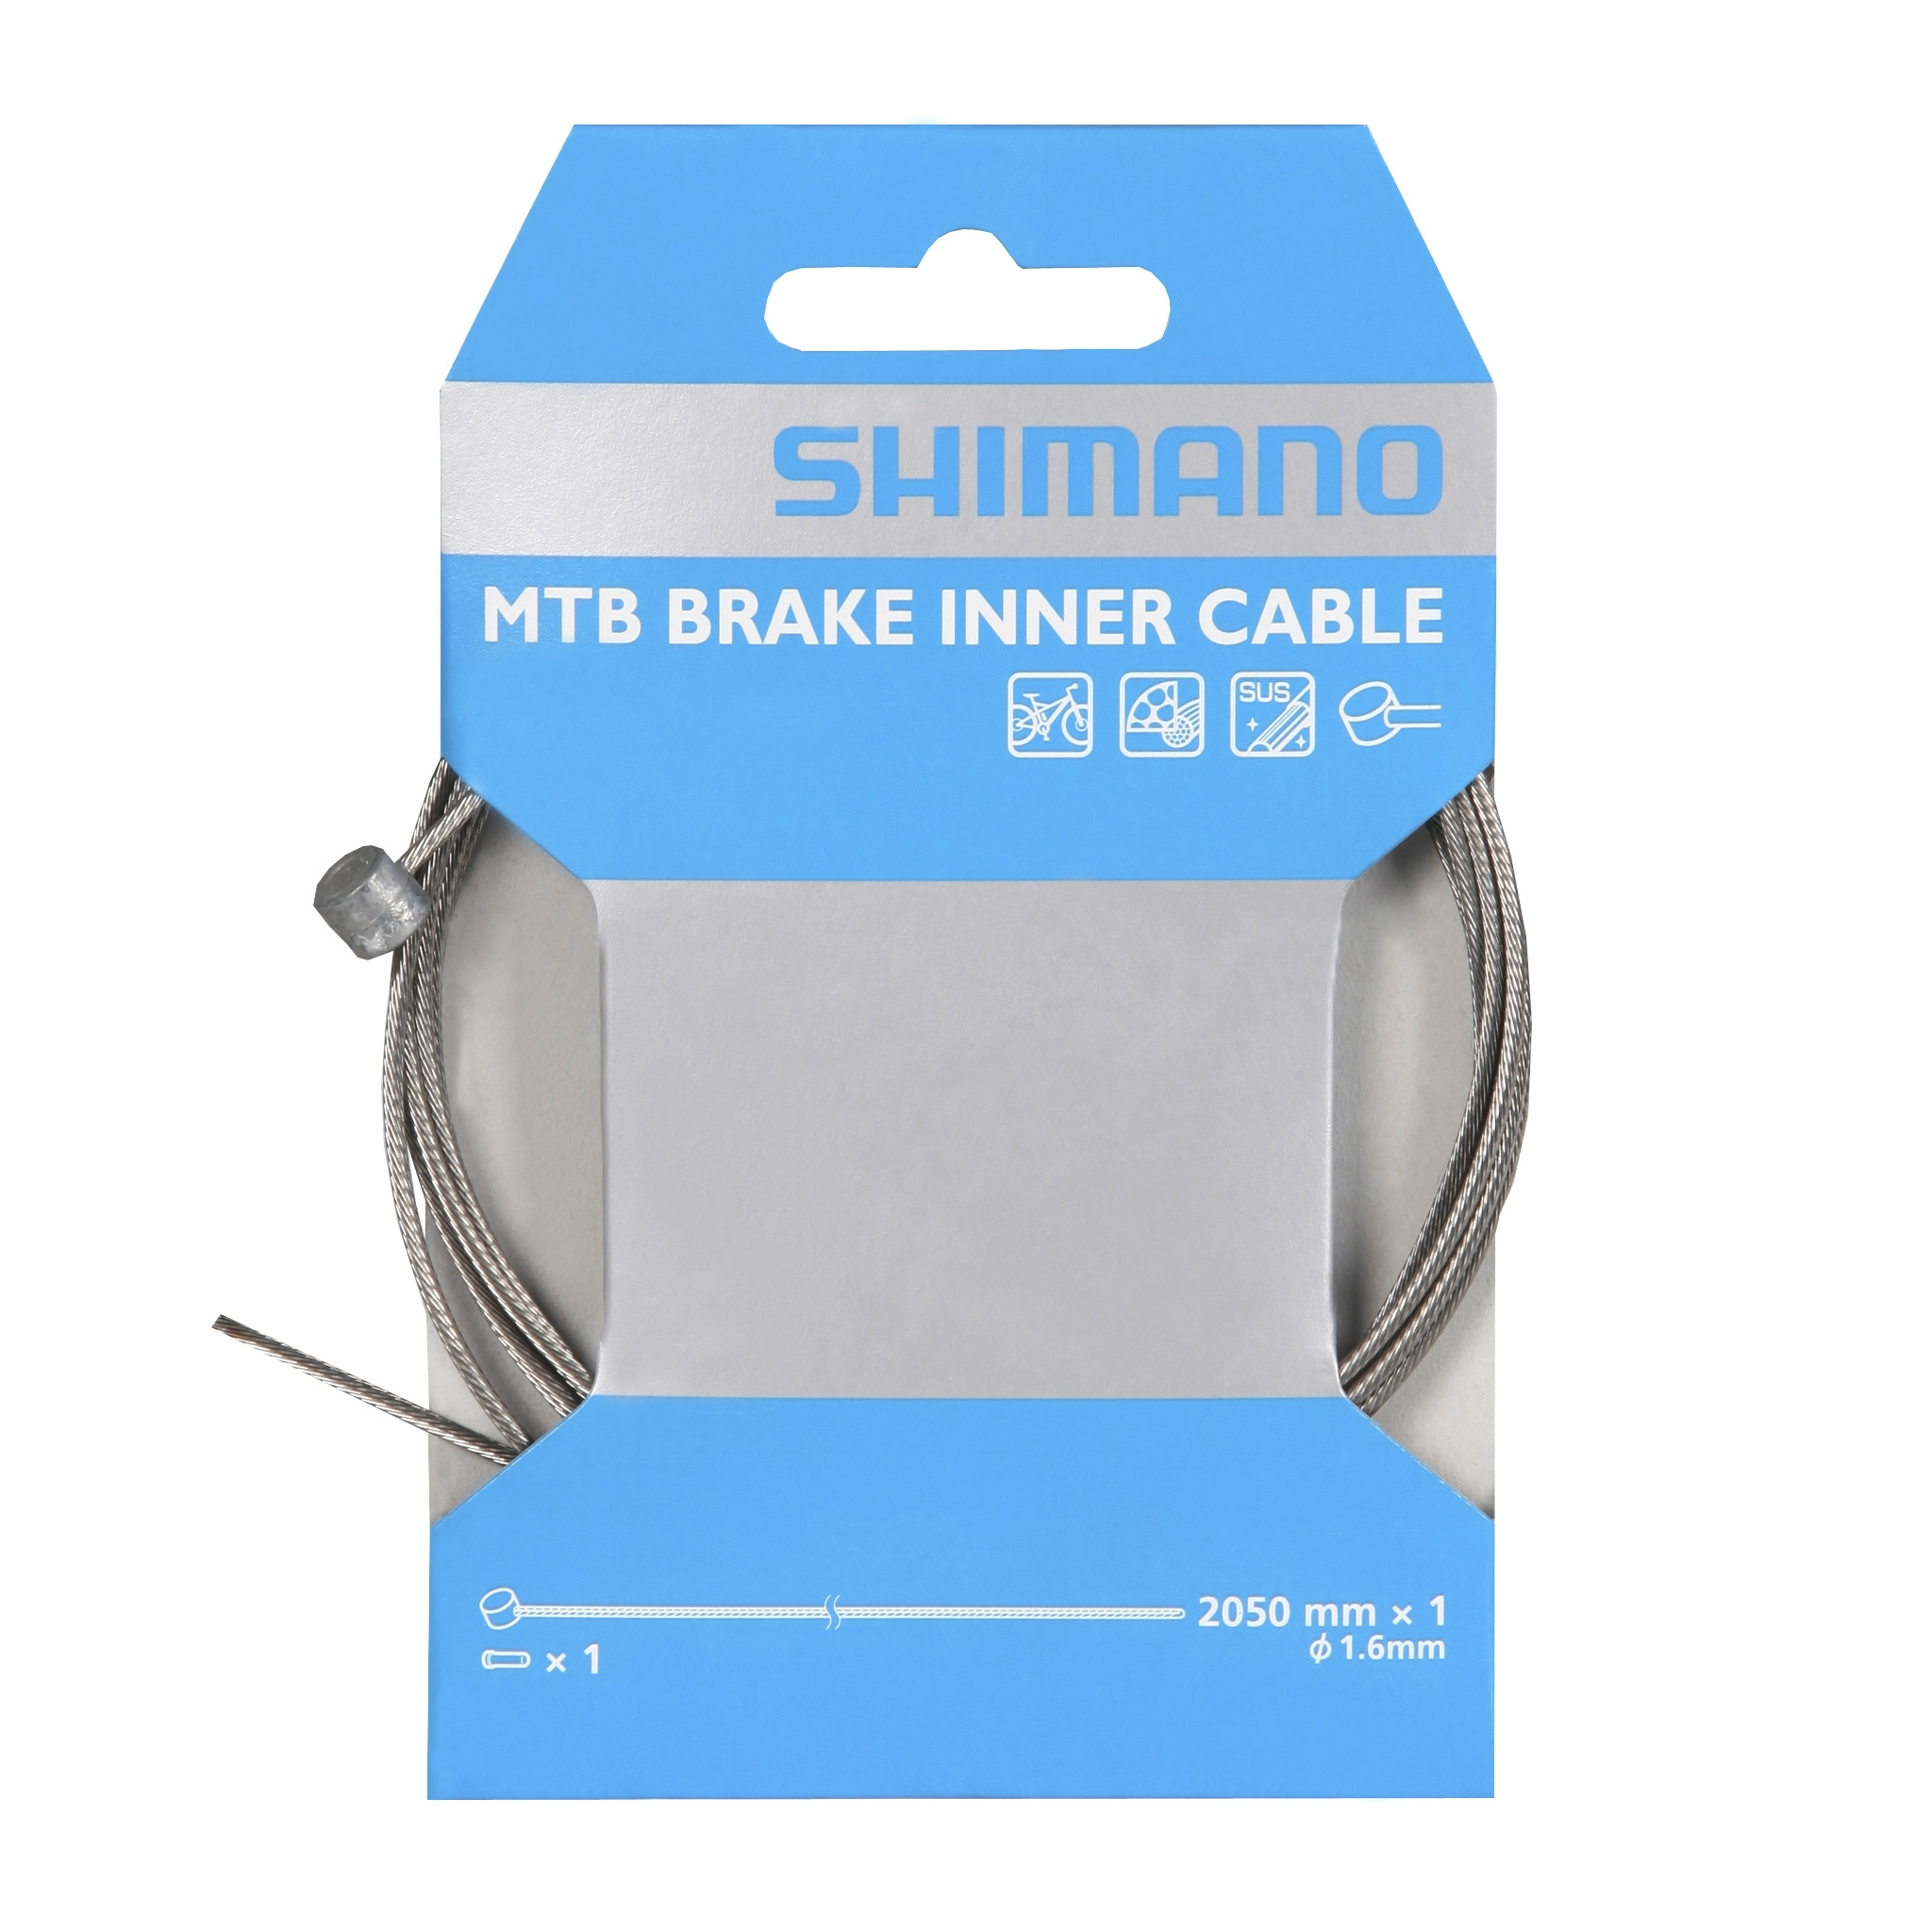 shimano mtb brake inner cable 2050mm probikeshop. Black Bedroom Furniture Sets. Home Design Ideas